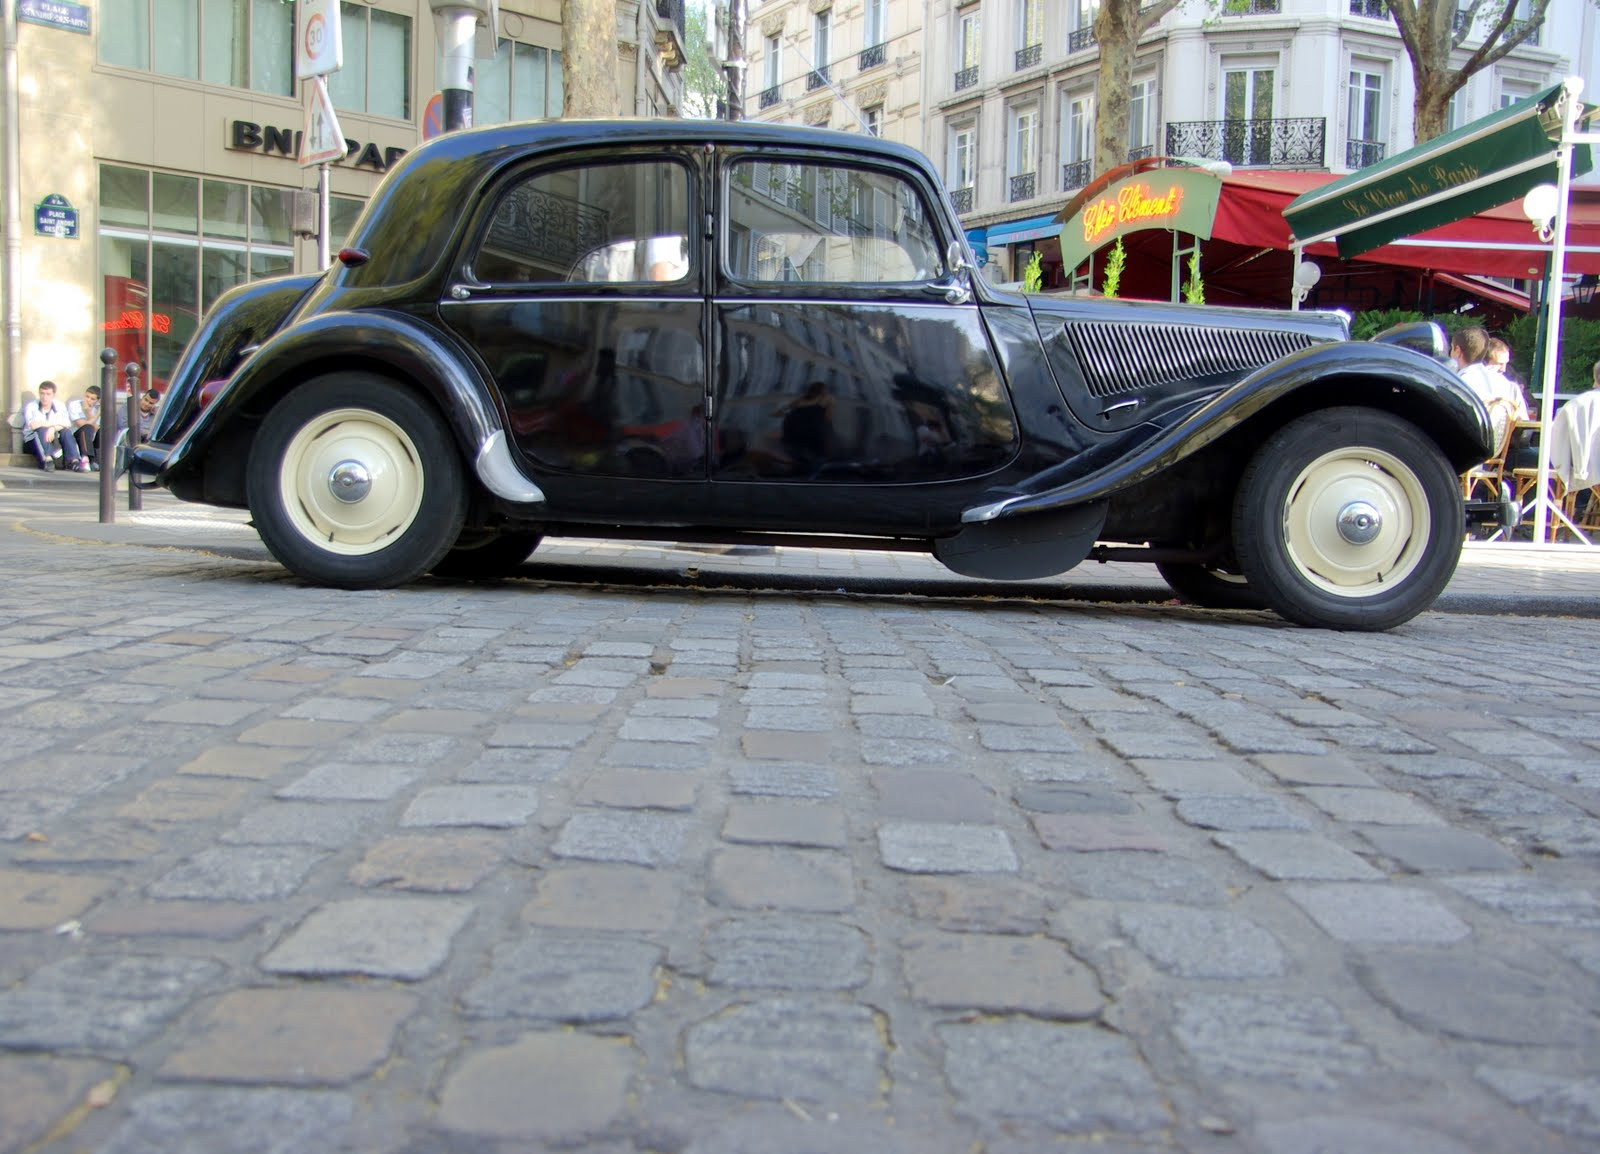 ParisDailyPhoto: Old cars pollute too much